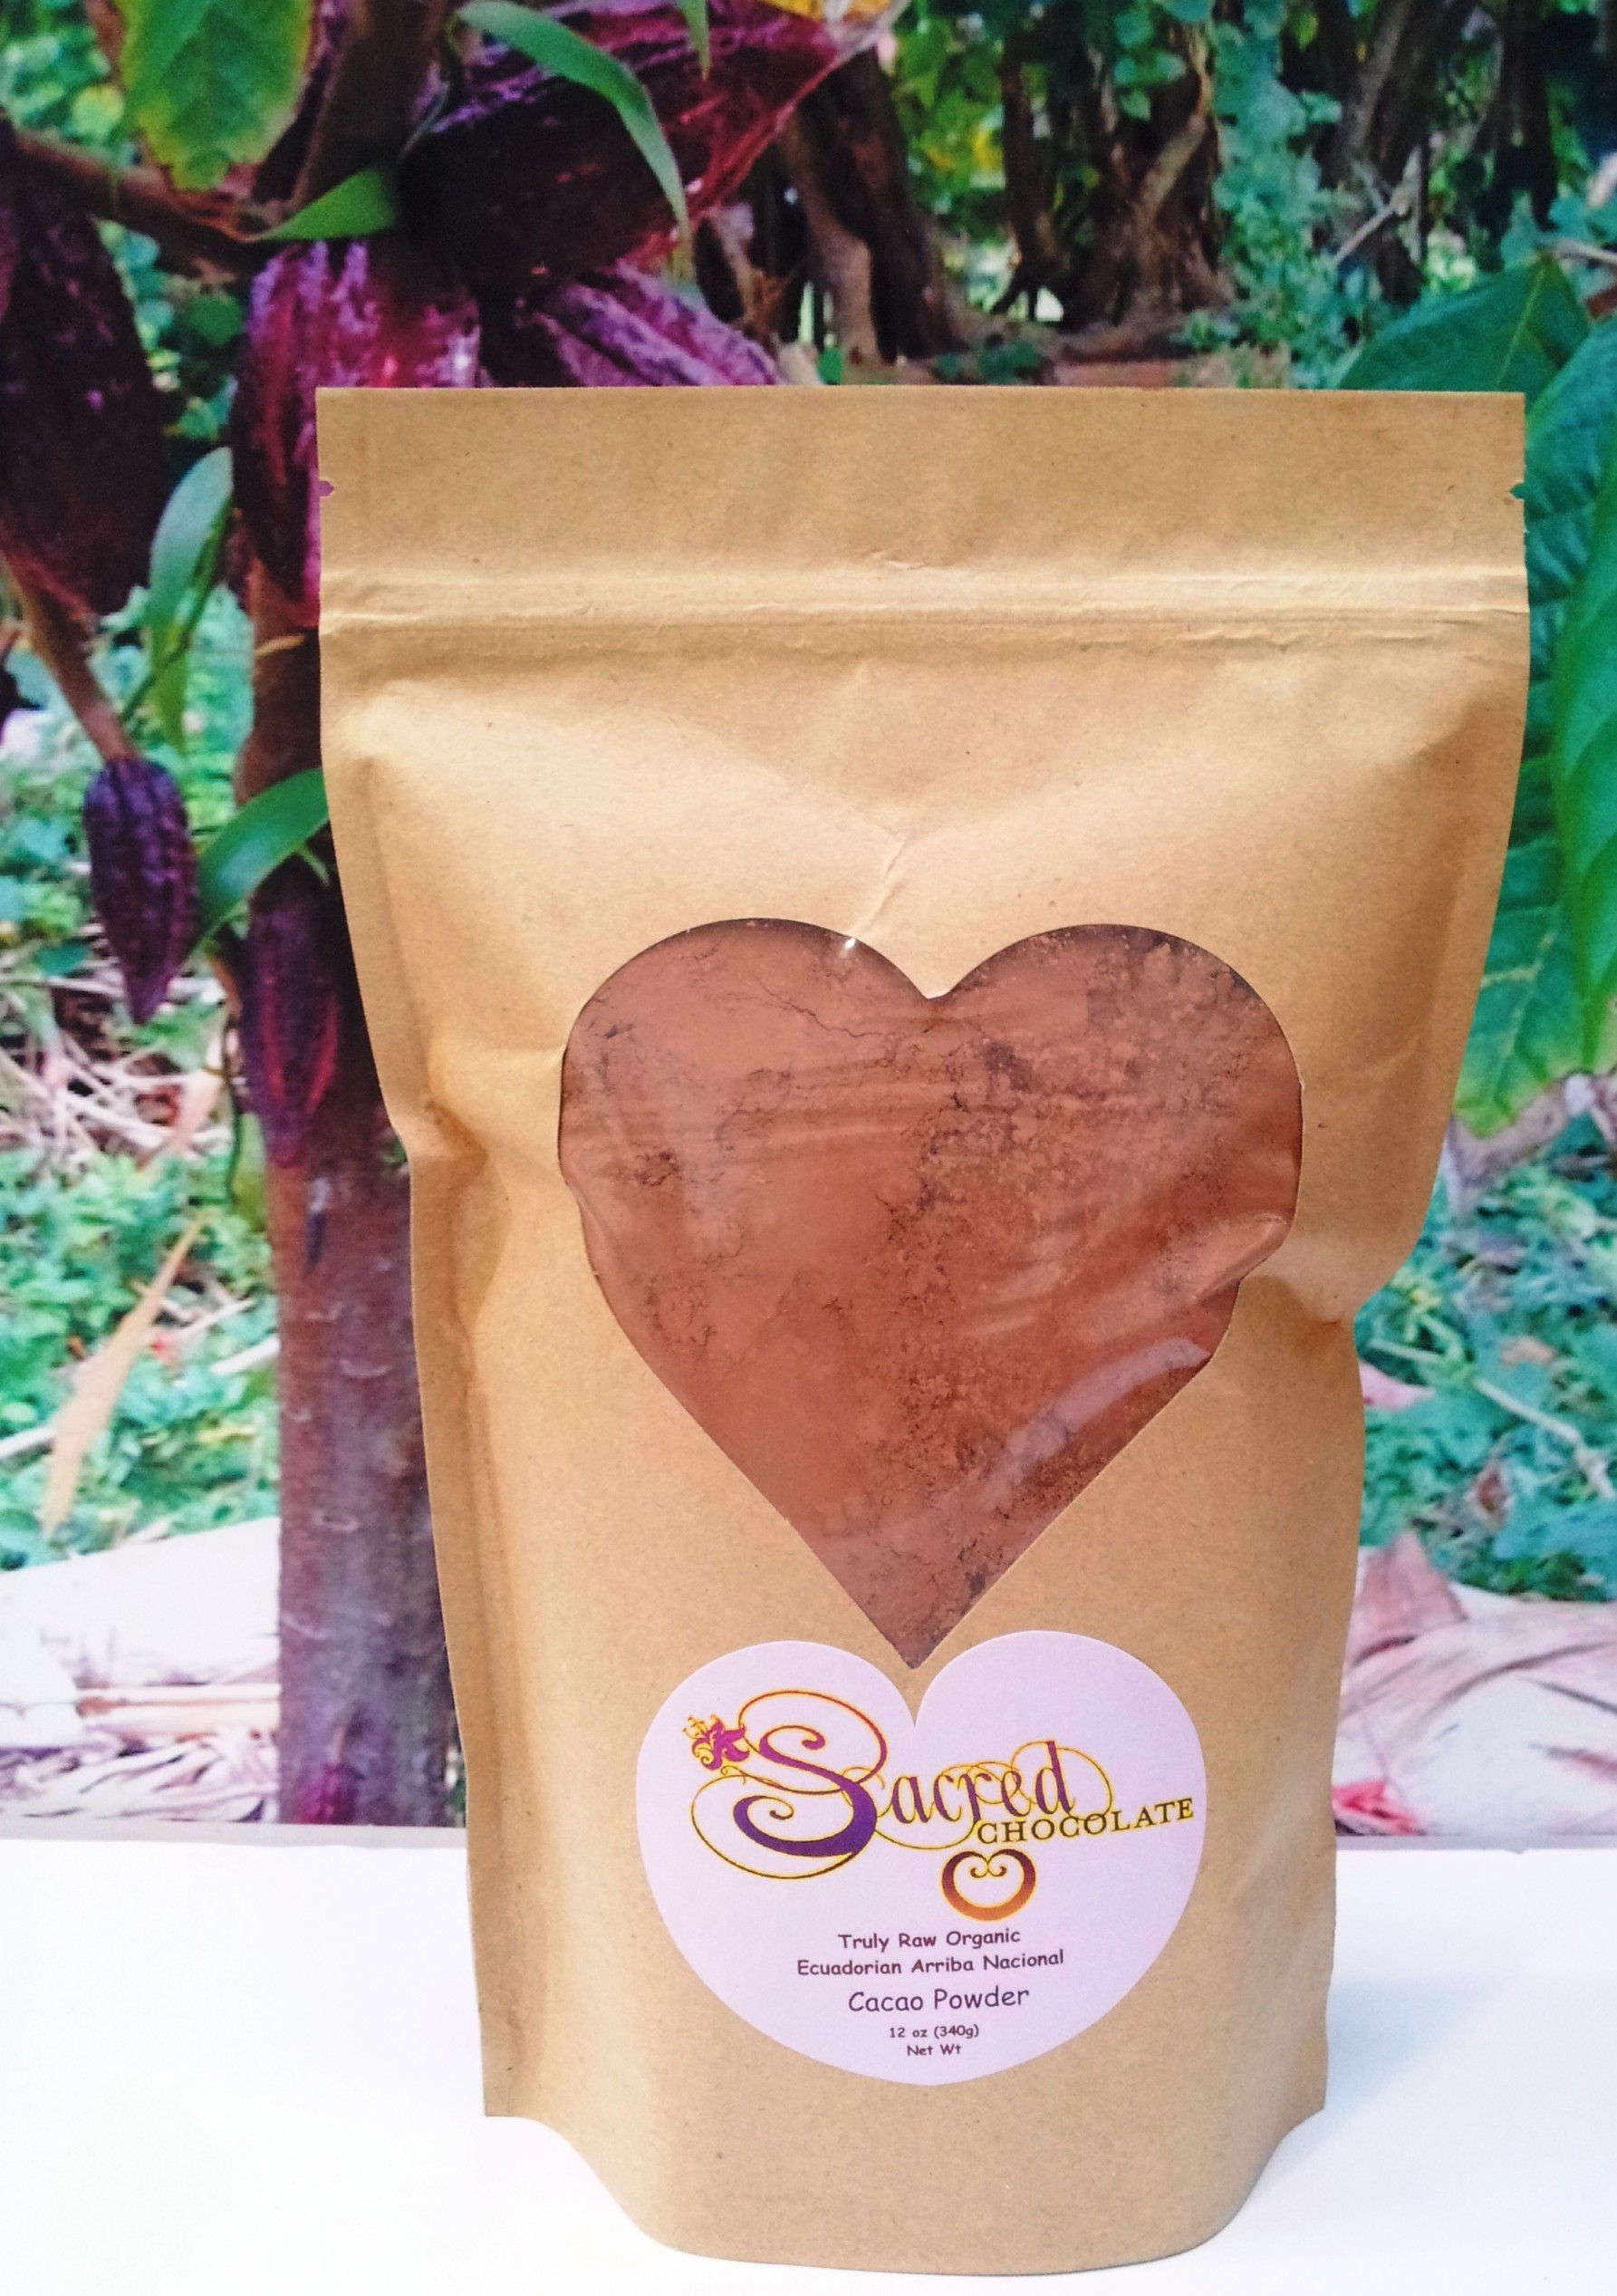 Raw Cacao Powder - Ecuadorian Arribal Nacional